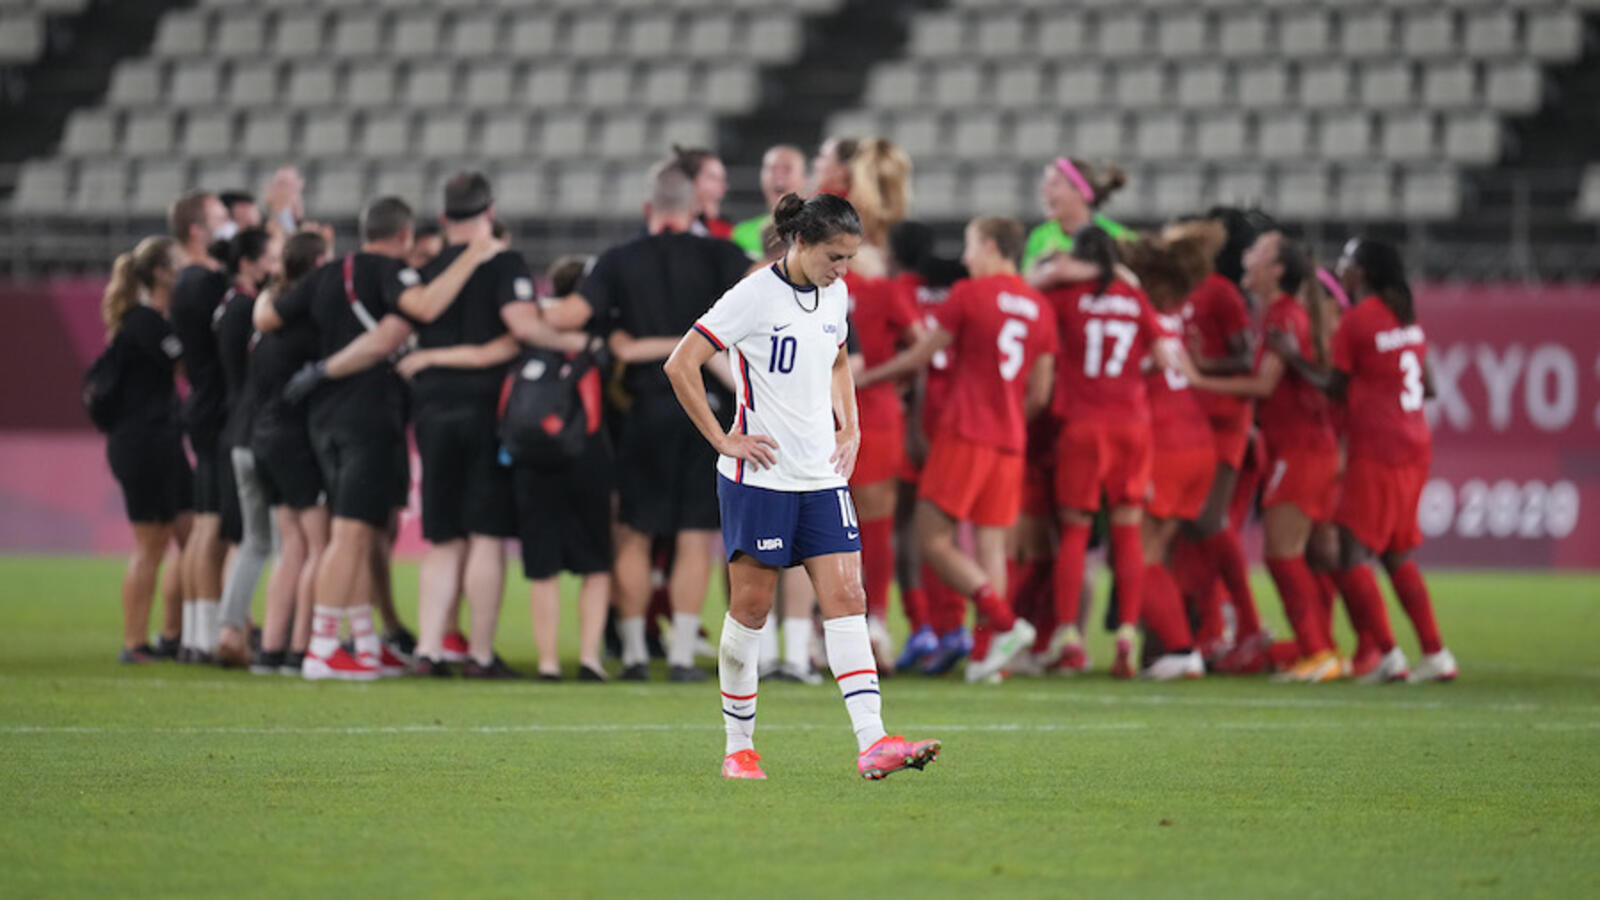 U.S. Women's Soccer Stunned, Eliminated By Canada In Tokyo Olympics